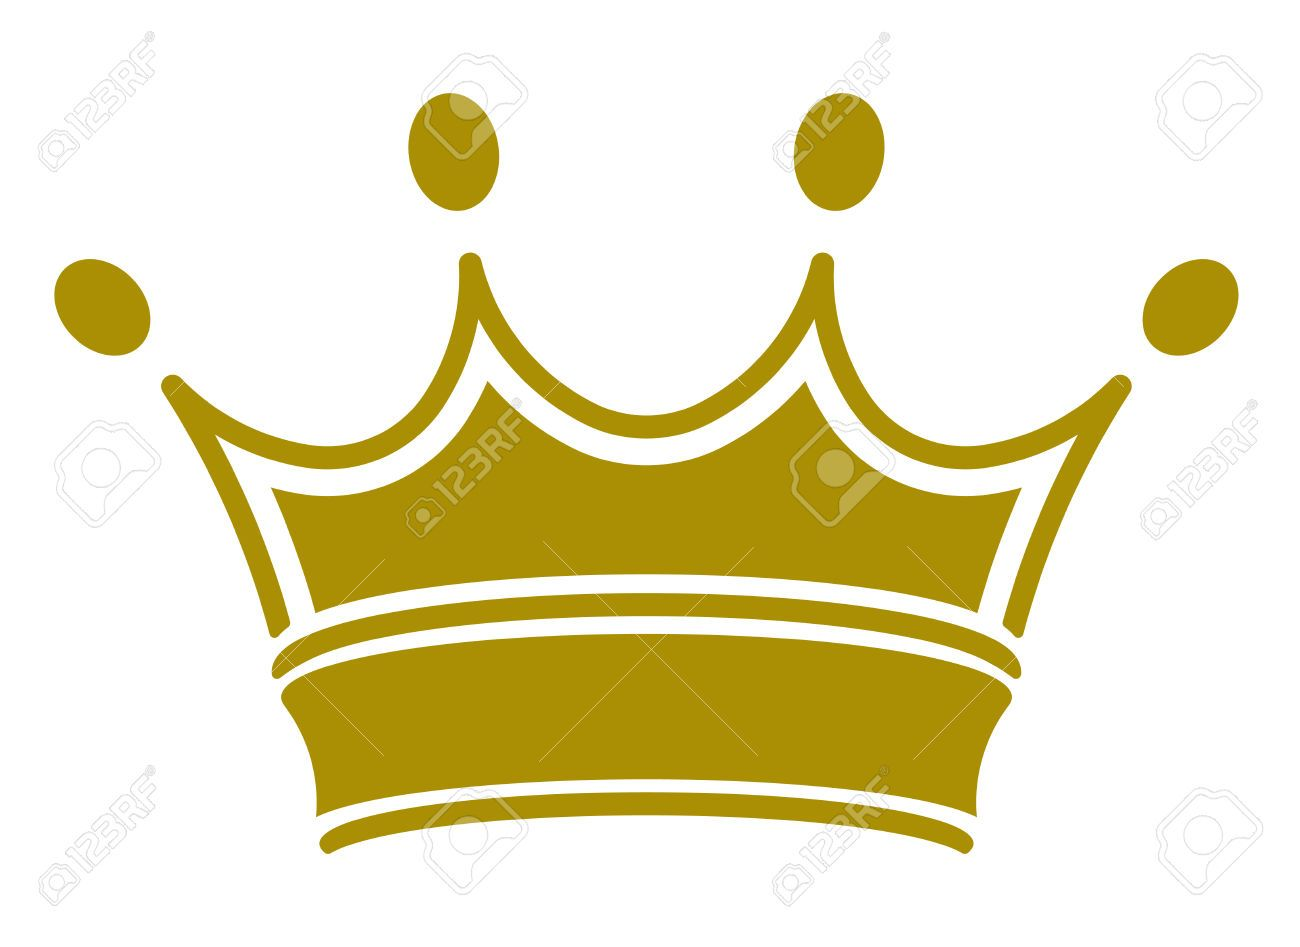 1300x947 king crown stock vector illustration and royalty free king crown